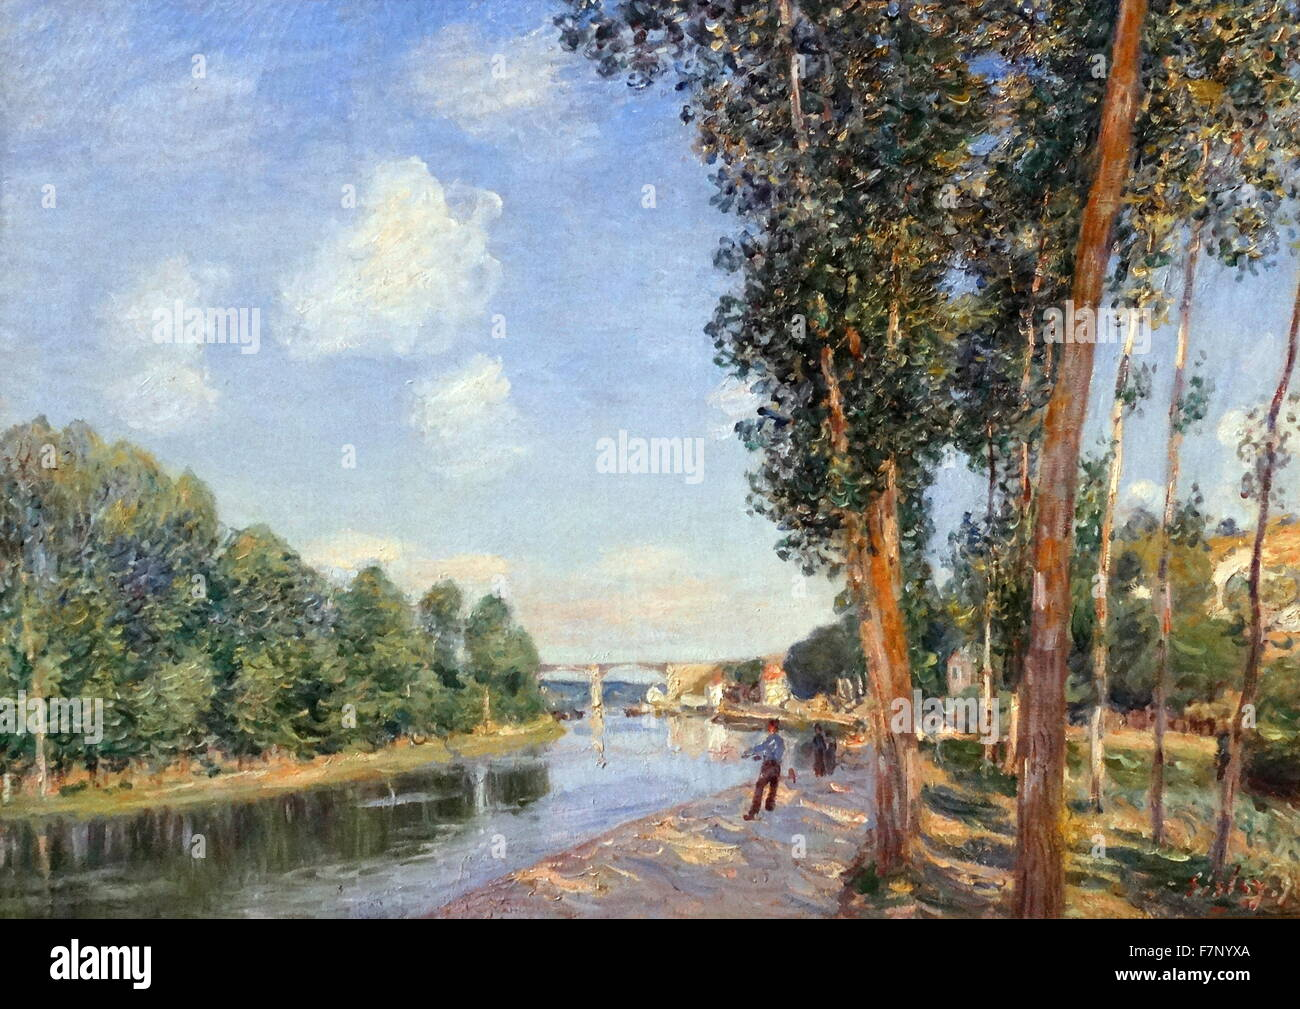 In Saint-Mammès. June Sunshine by Alfred Sisley (1839-1899) French impressionist landscape painter. Dated 1852 - Stock Image